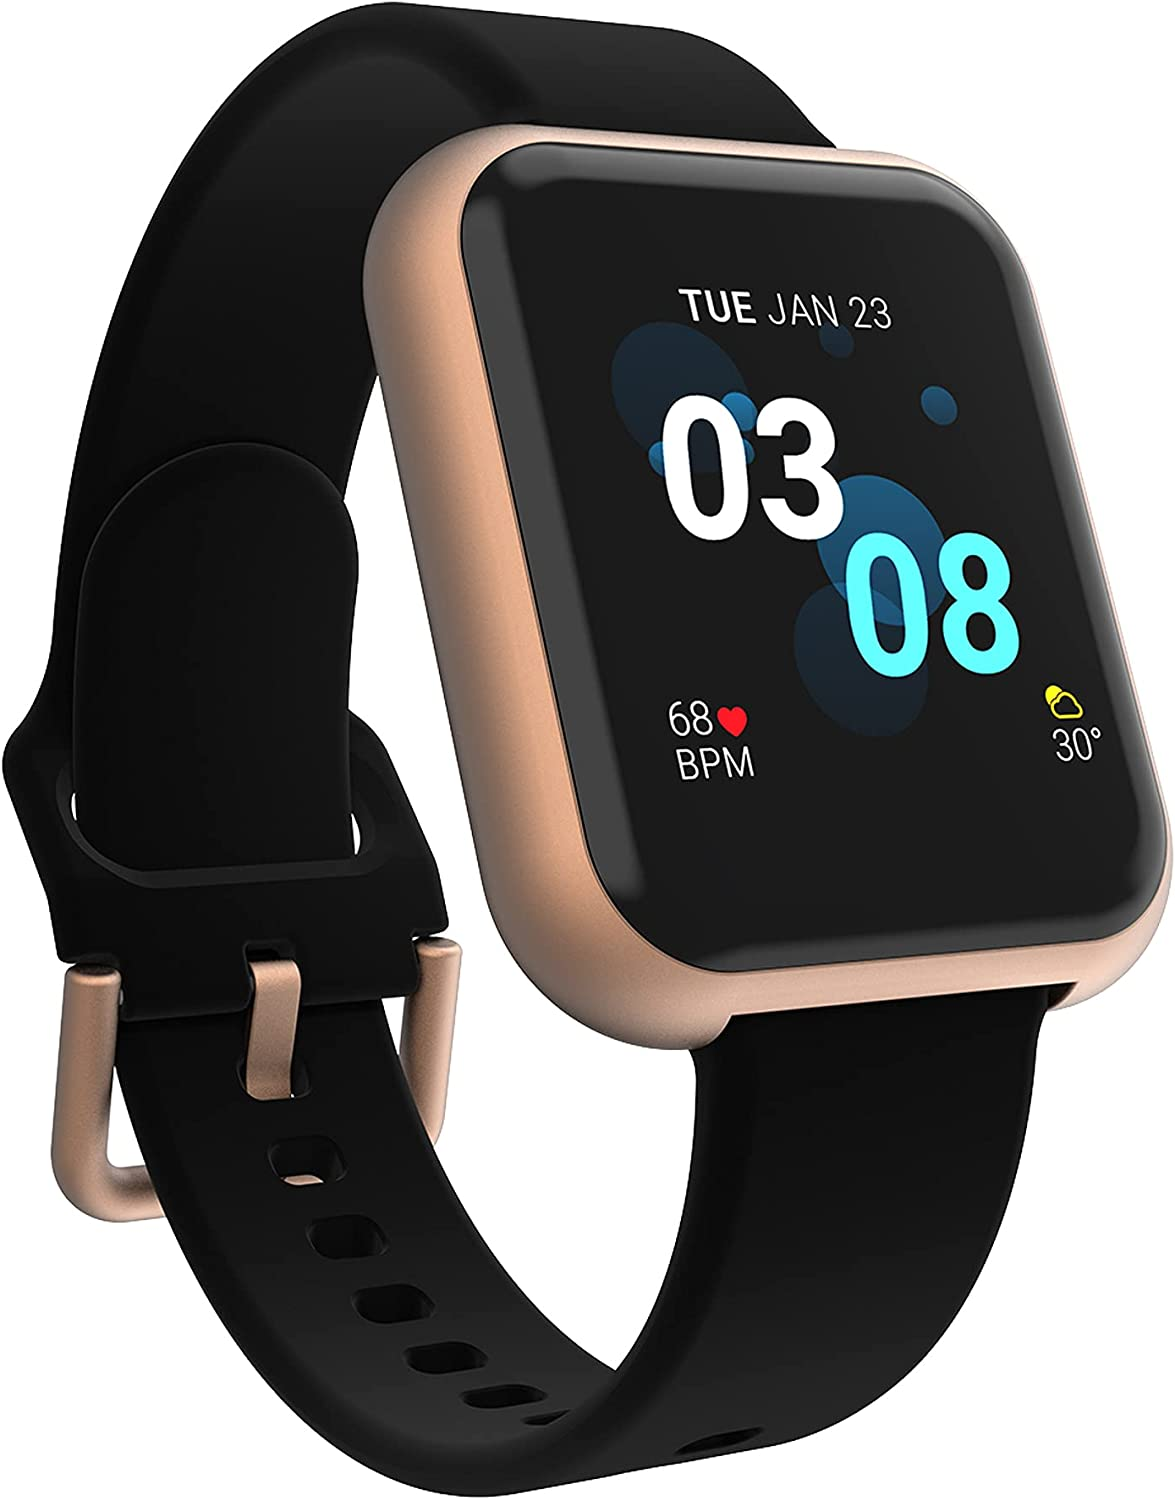 iTouch Air 3 Smartwatch Fitness Tracker, Heart Rate, Step Counter, Sleep Monitor, Message, IP68 Swimming Waterproof for Women and Men, Touch Screen, Compatible with iPhone and Android (40mm)